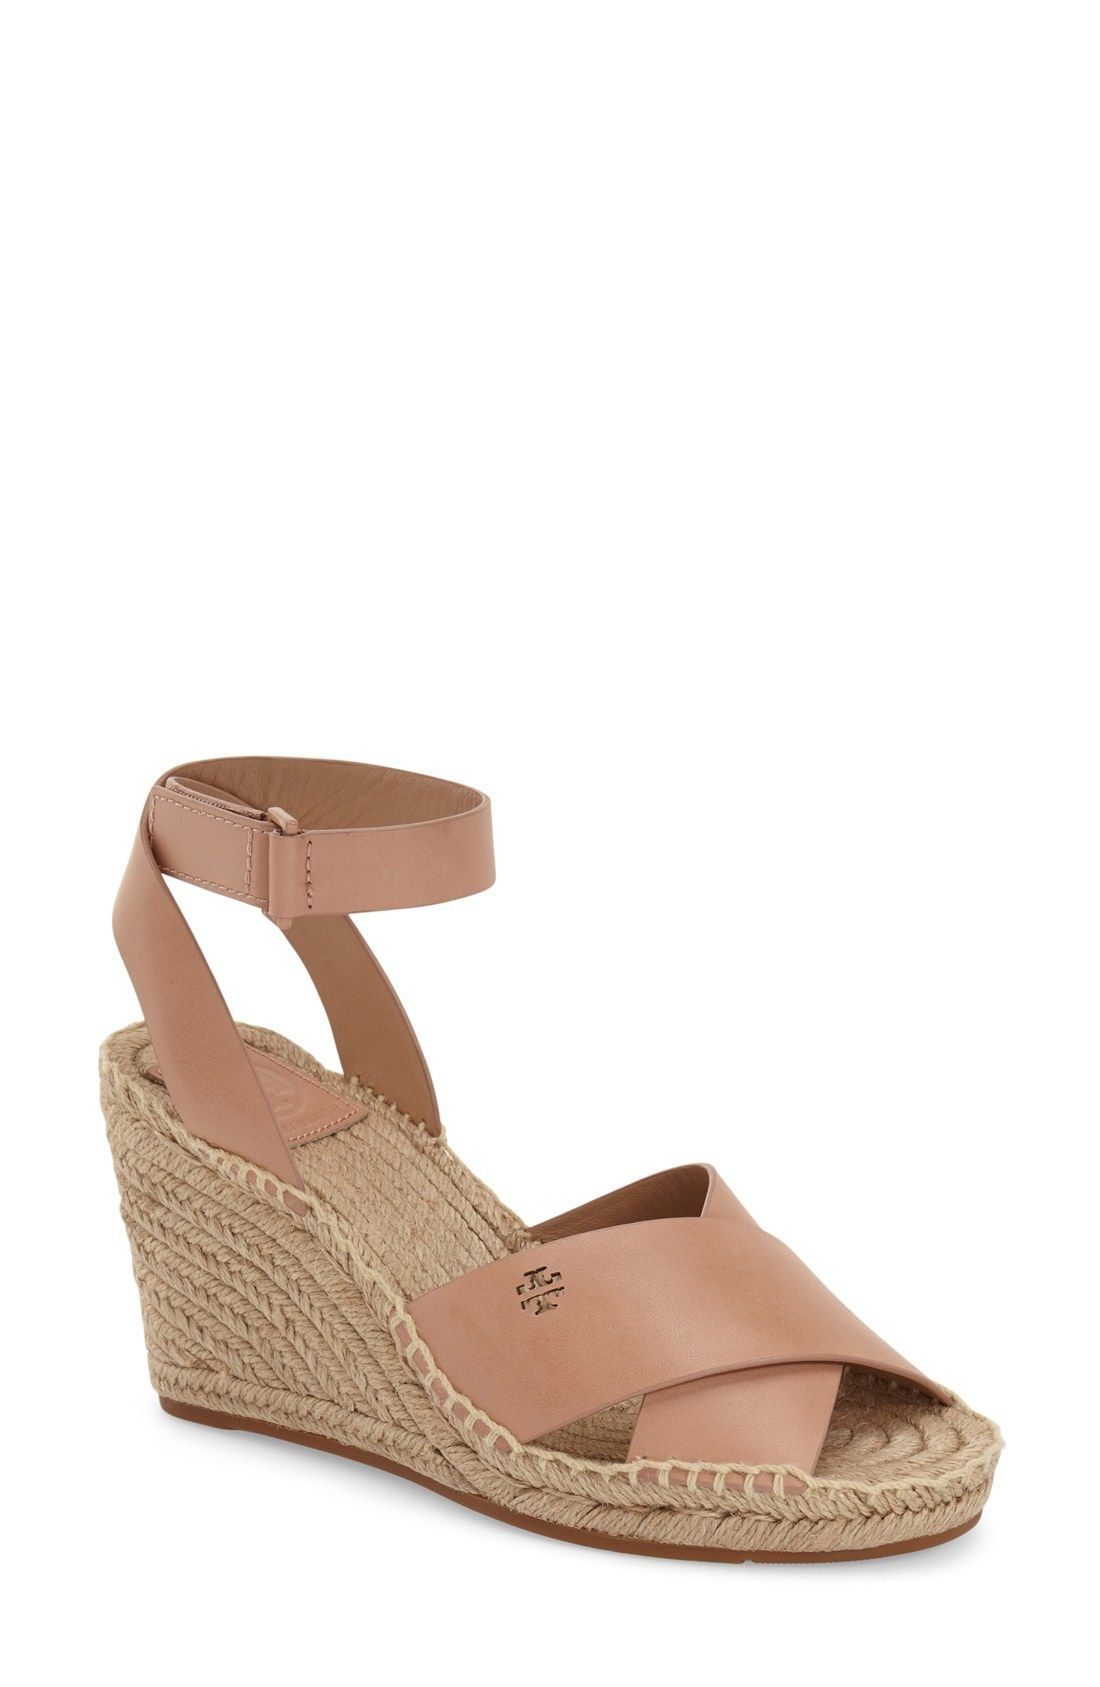 6f7fa253242 Tory Burch  Bima  Espadrille Wedge (Women) available at  Nordstrom ...